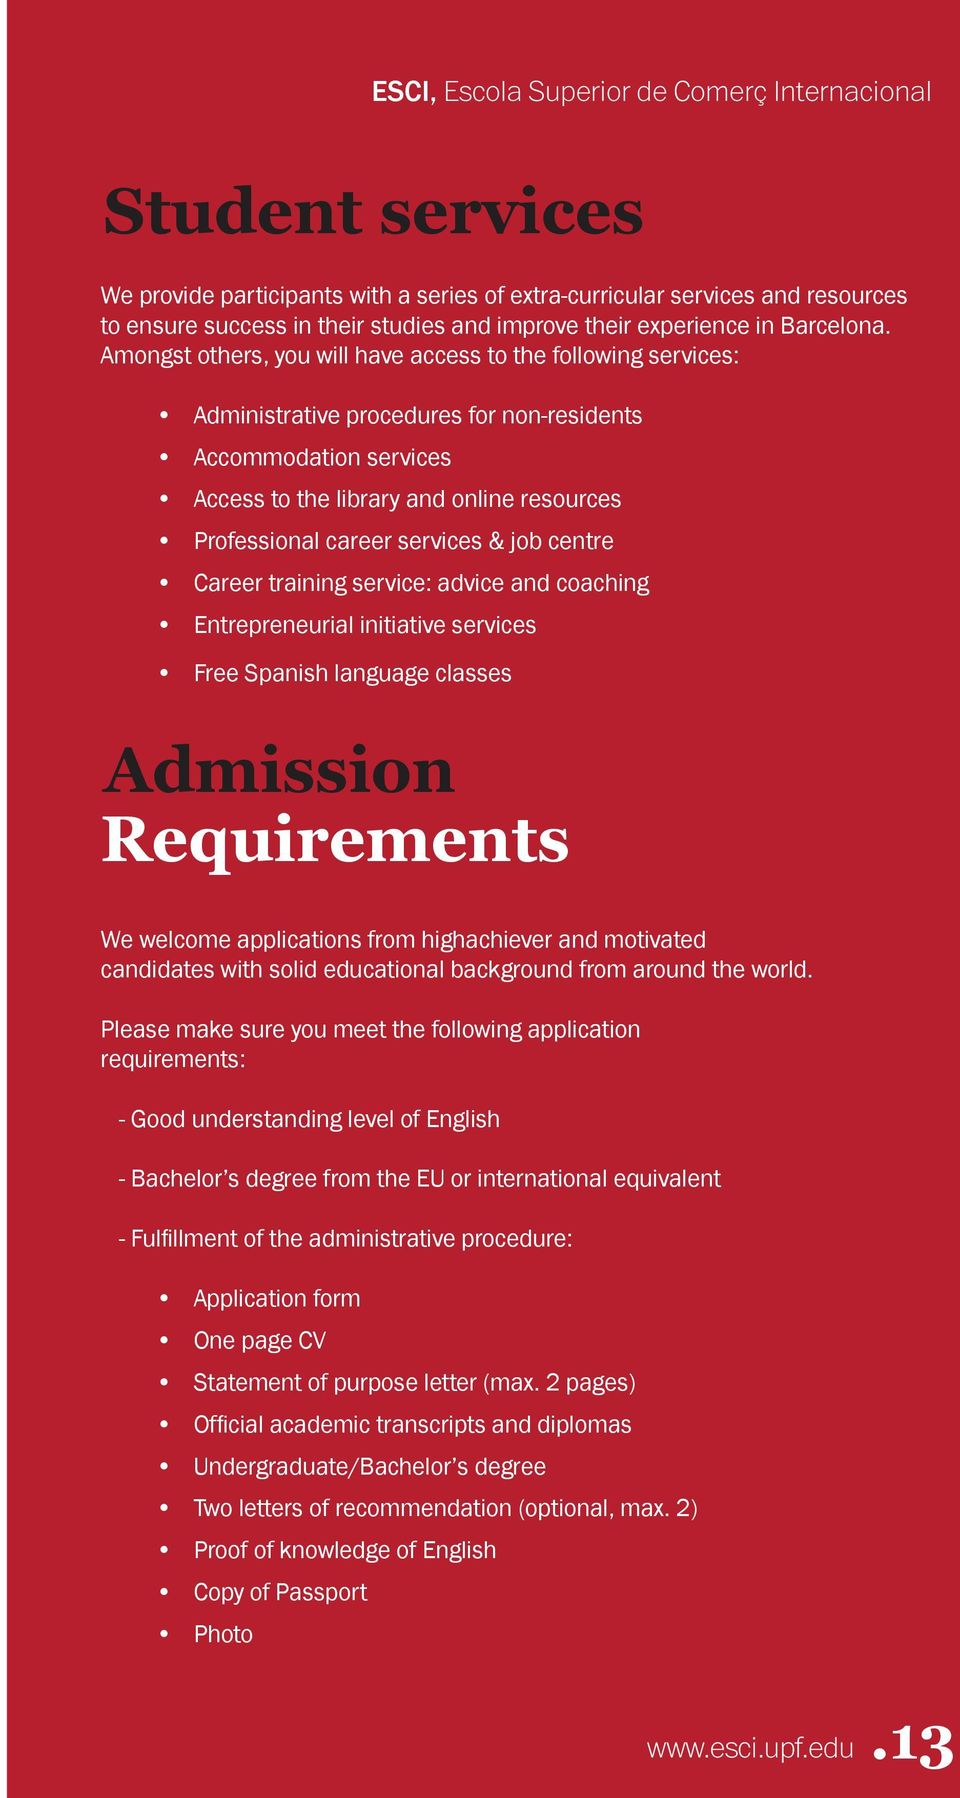 Amongst others, you will have access to the following services: Administrative procedures for non-residents Accommodation services Access to the library and online resources Professional career